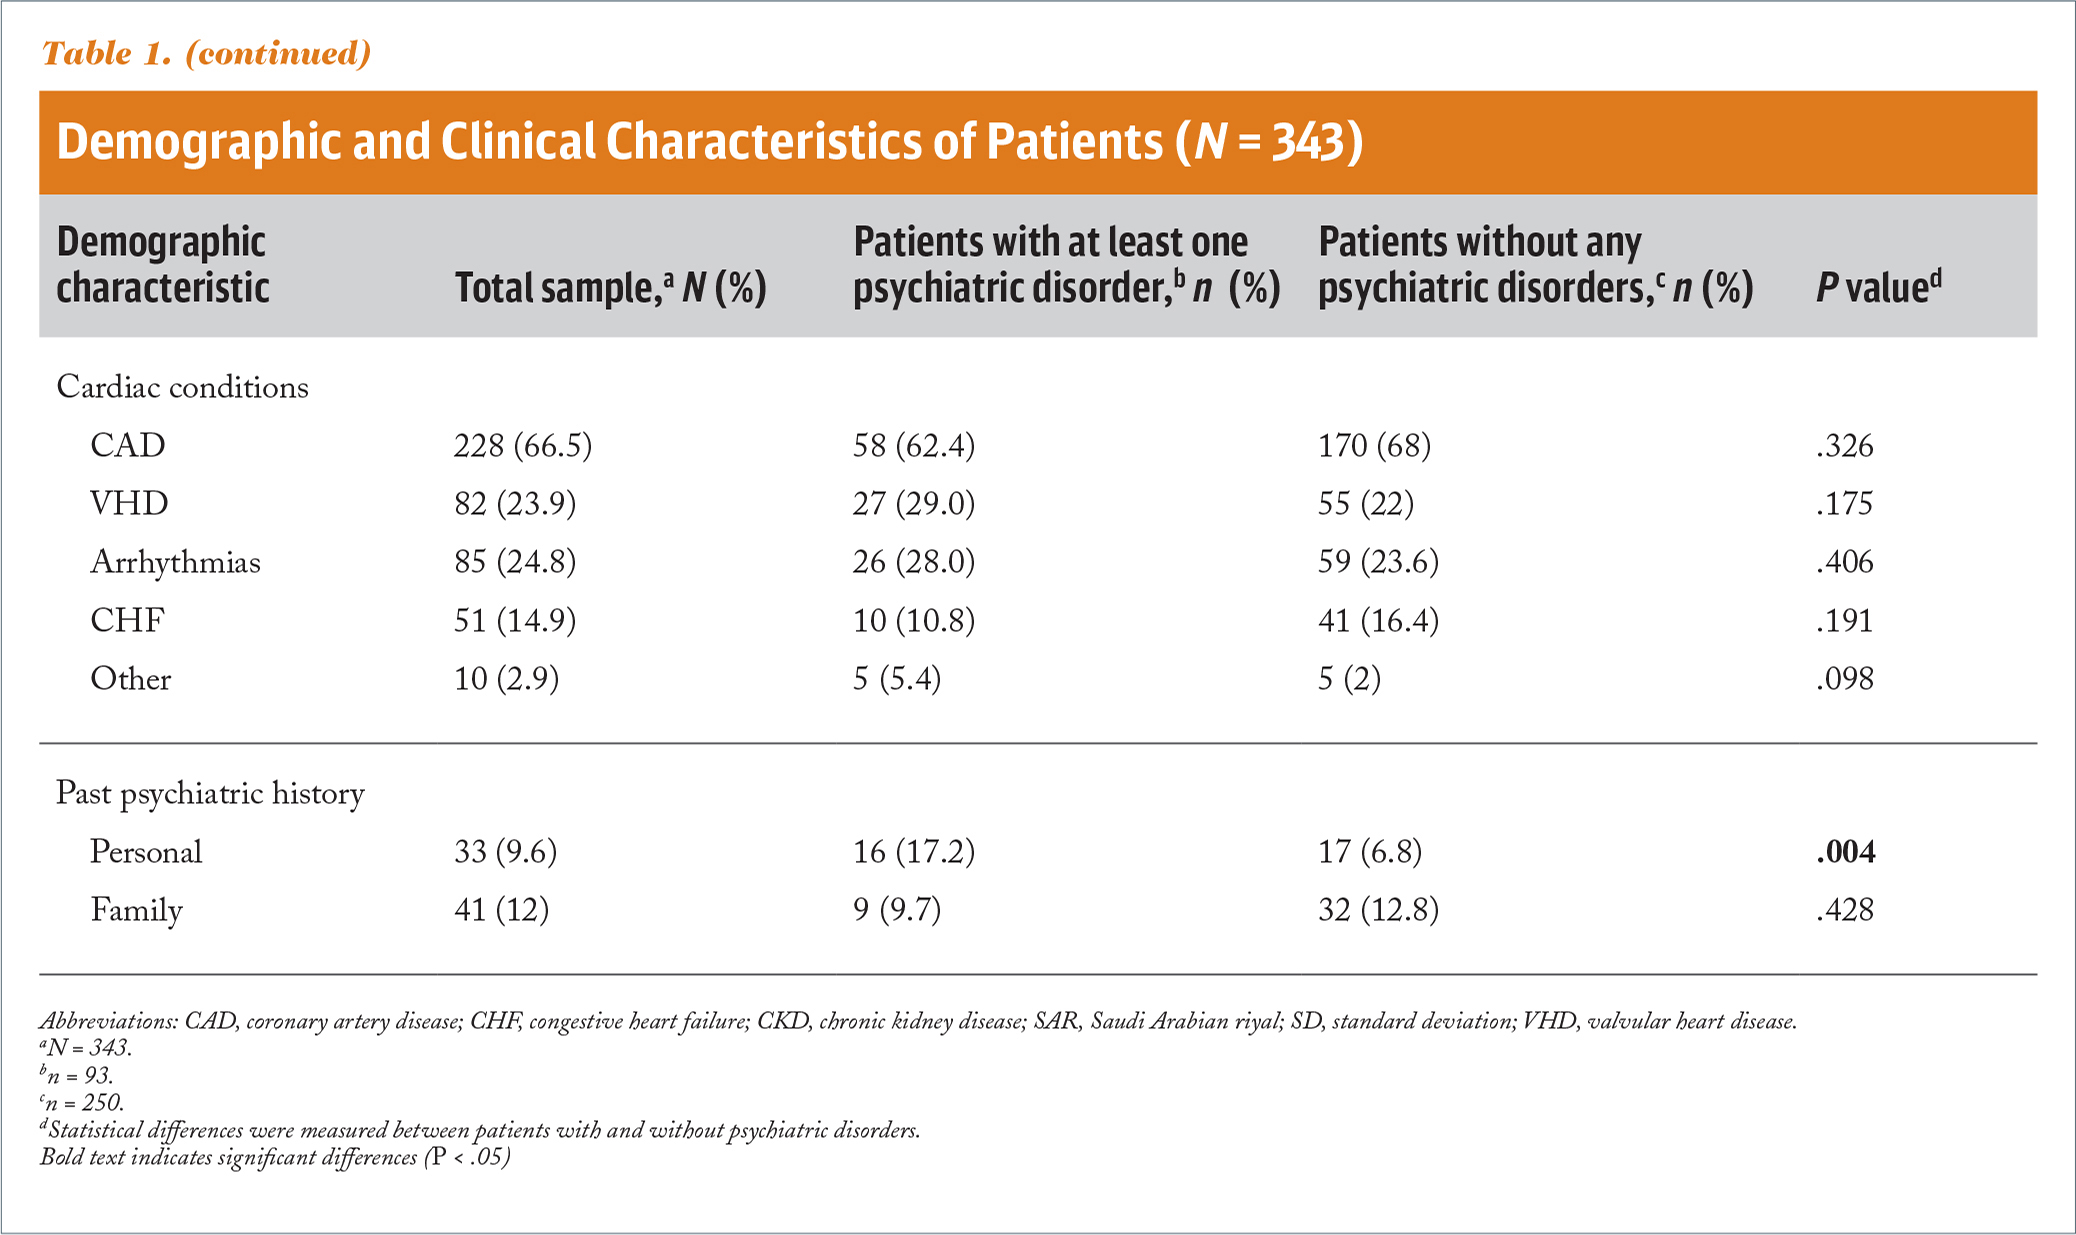 Demographic and Clinical Characteristics of Patients (N = 343)